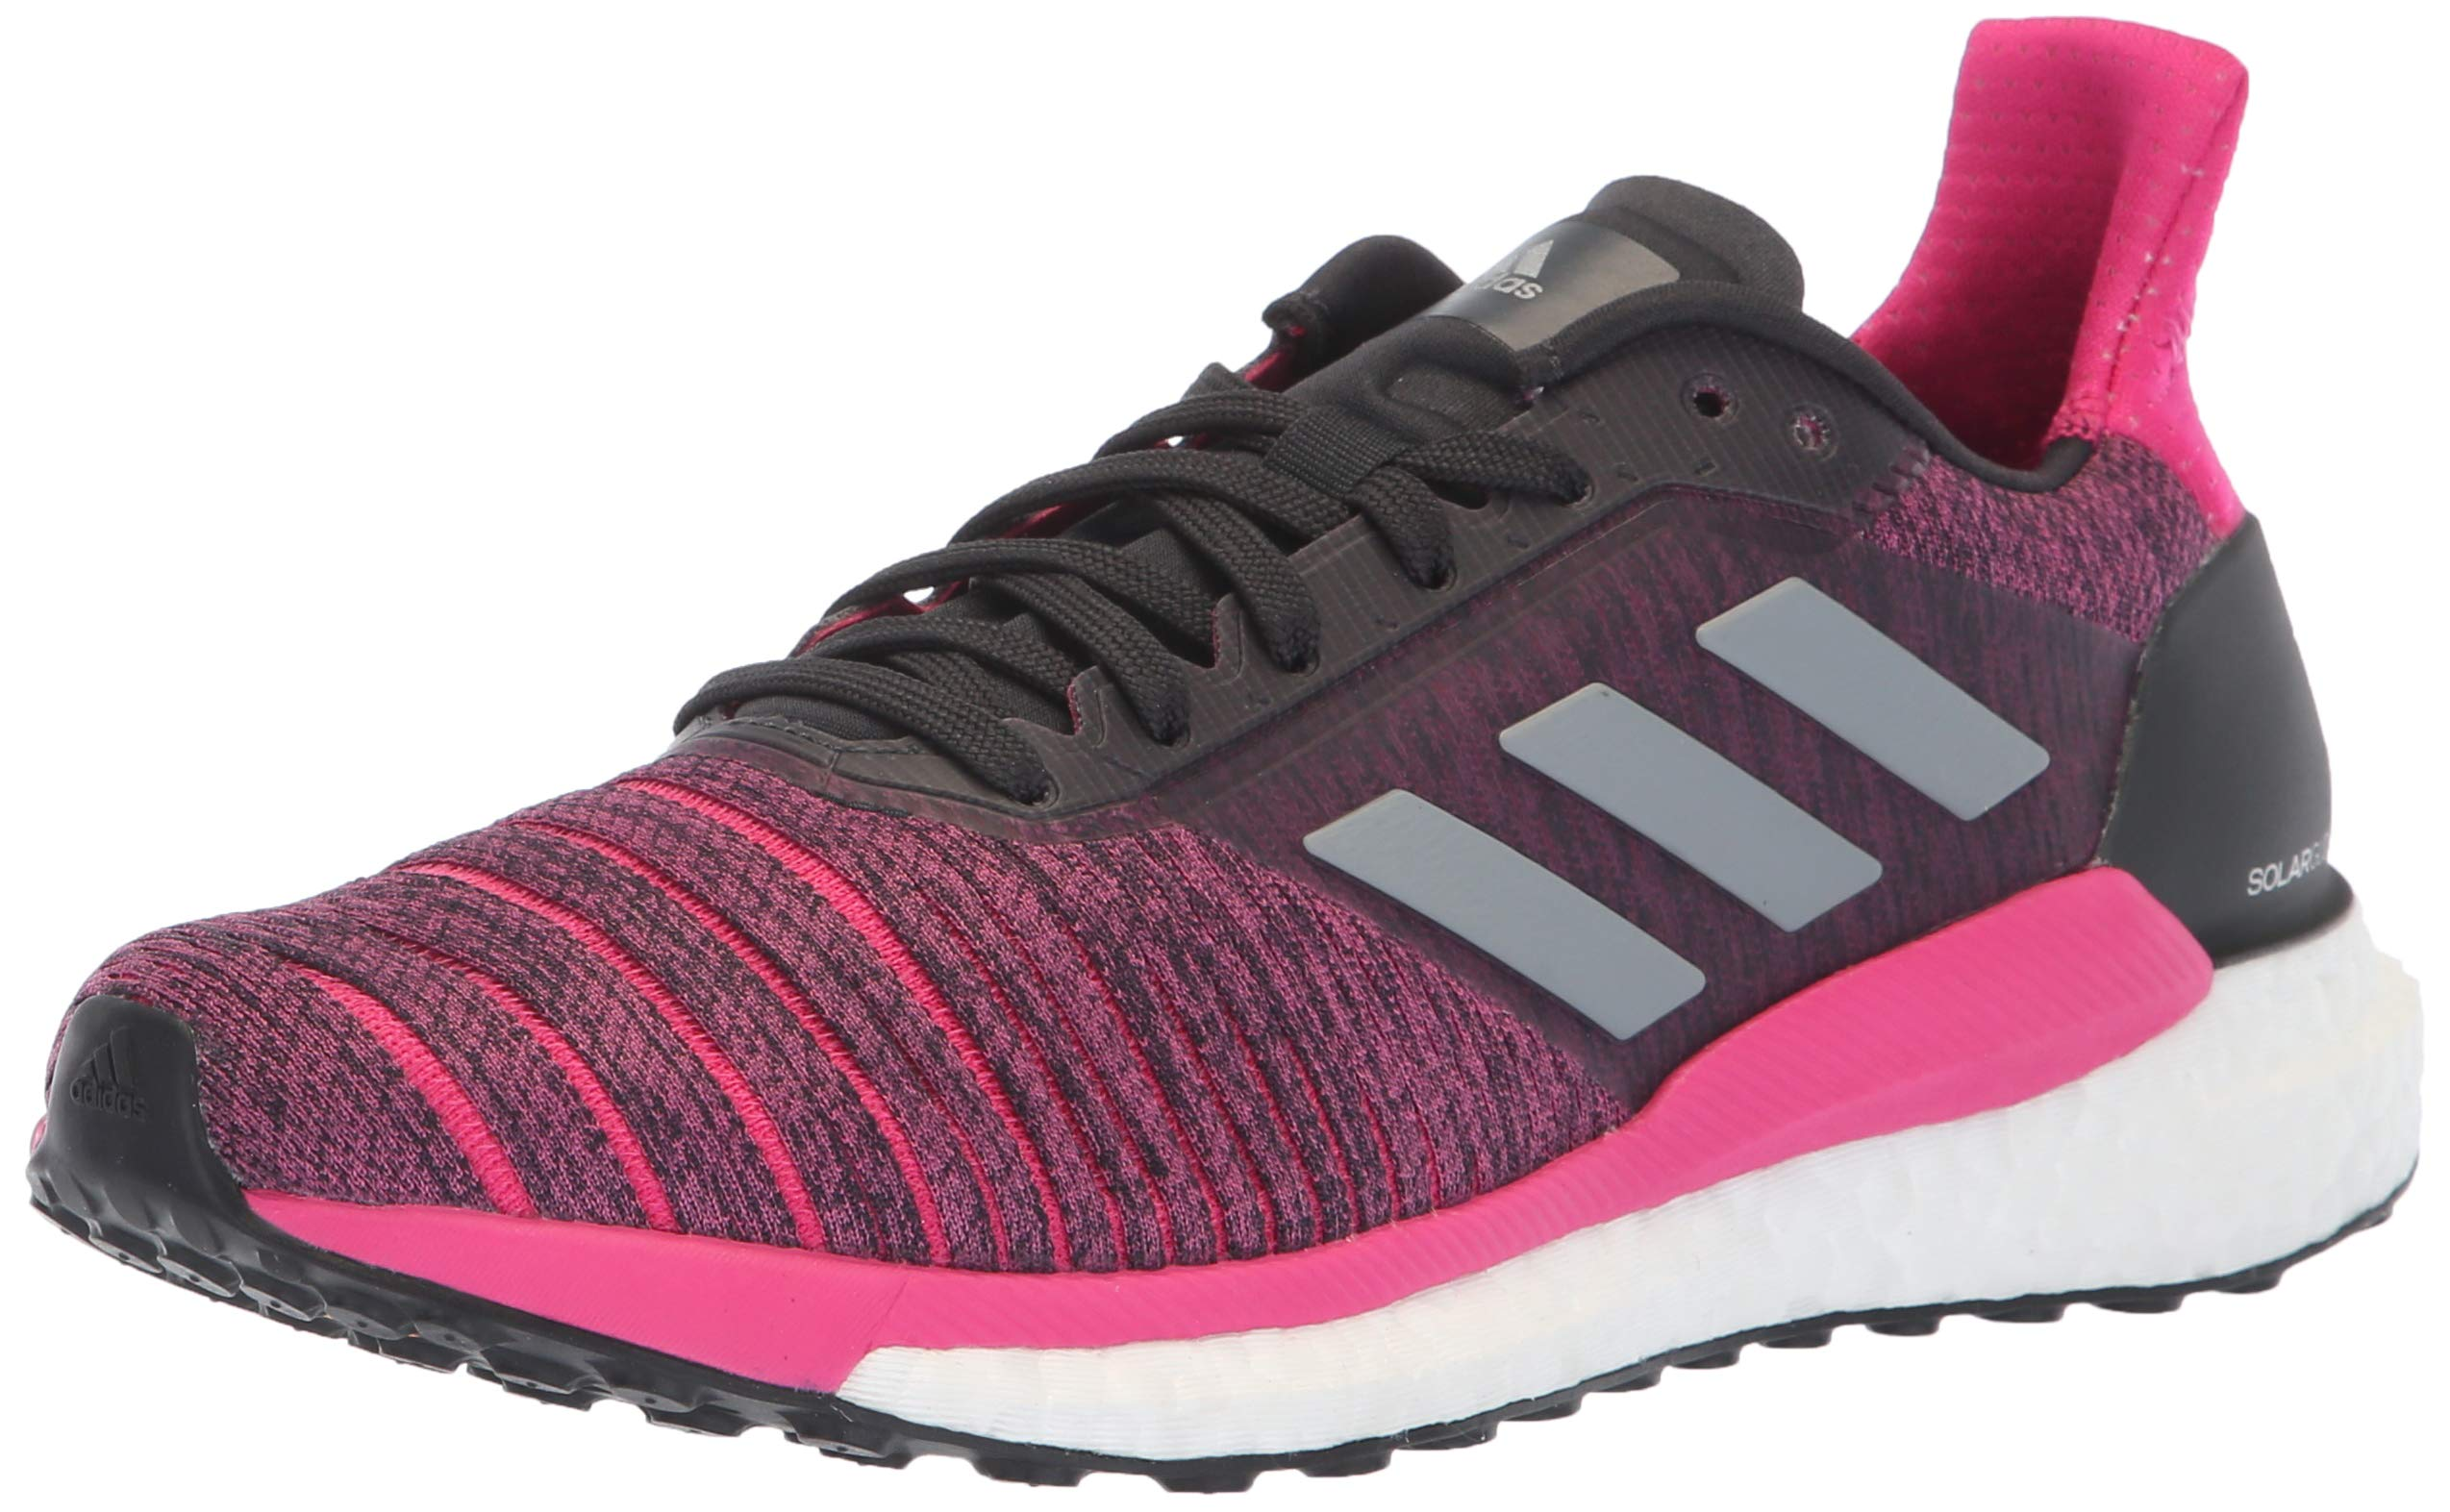 adidas Women's Solar Glide Running Shoe, Carbon/Grey/Real Magenta, 7 M US